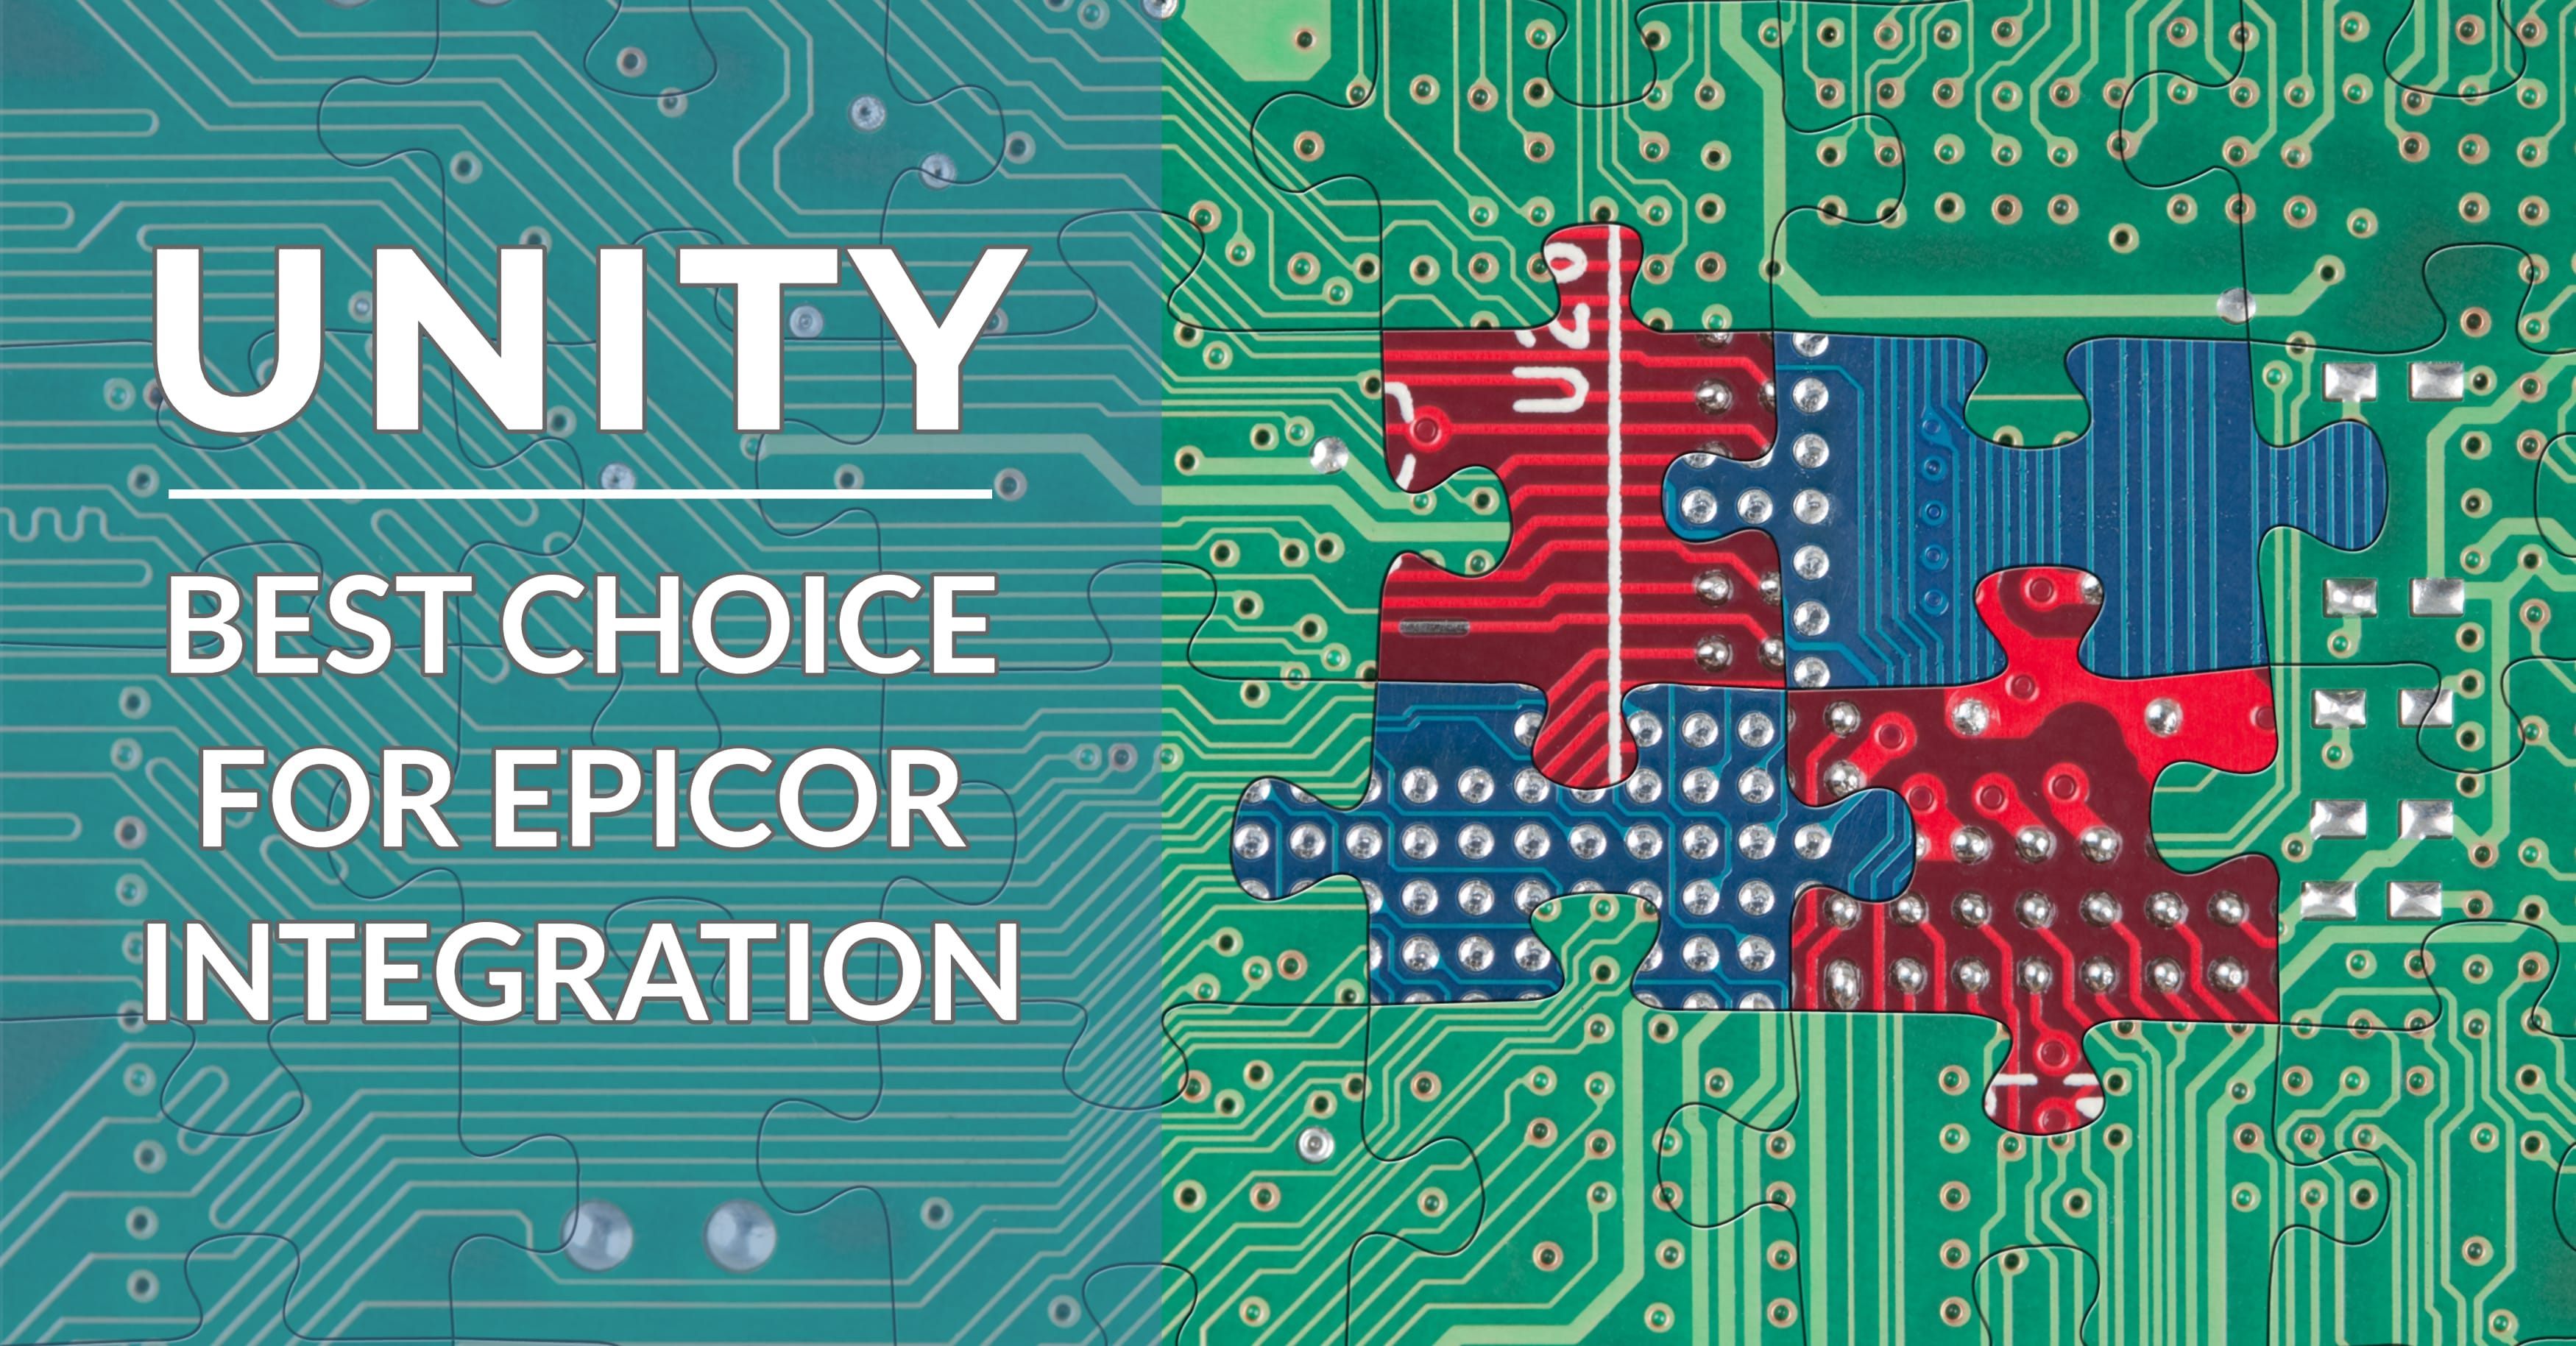 Unity: The Best Choice for Epicor Integration